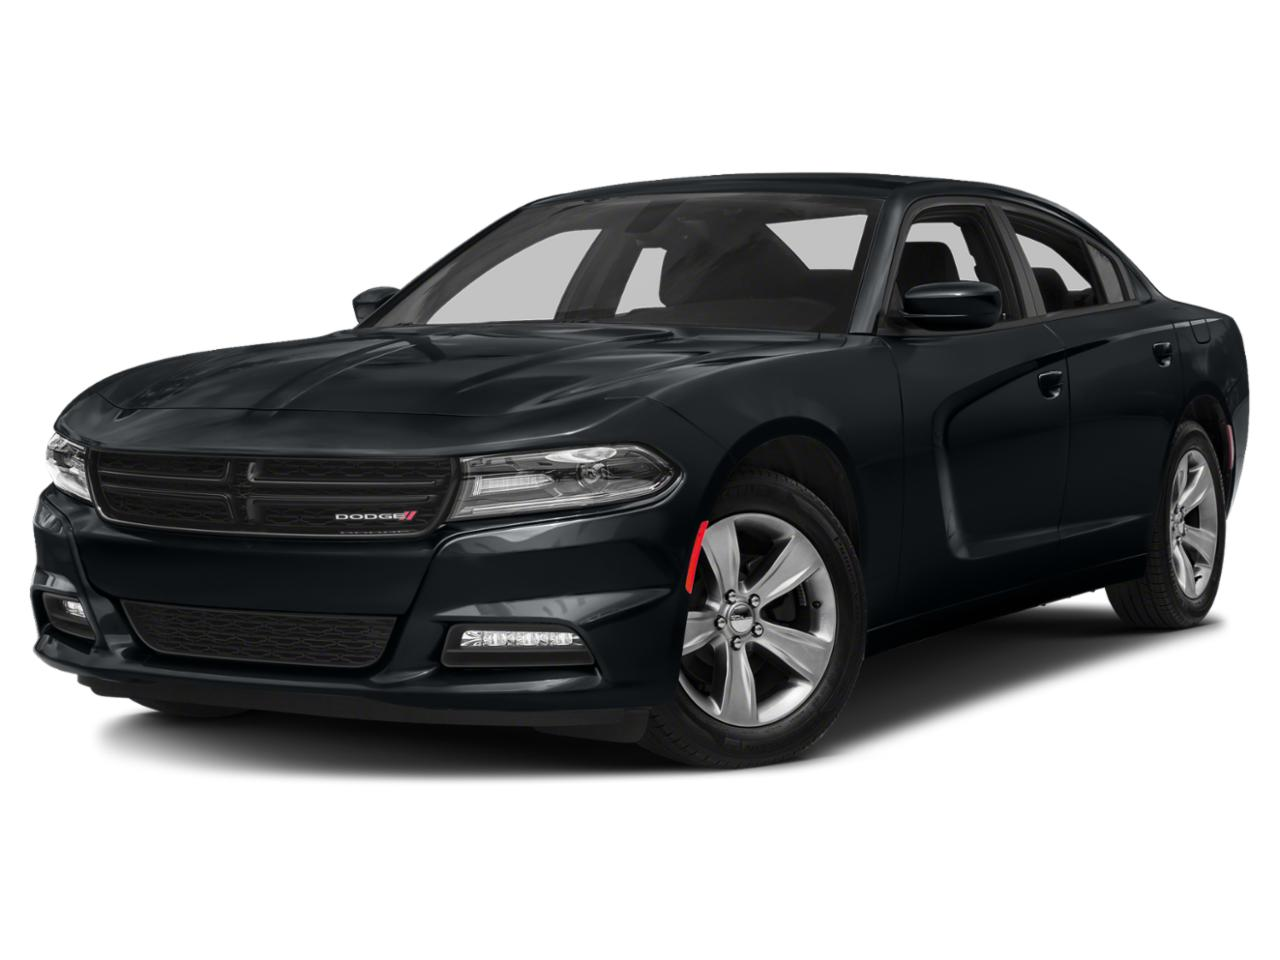 2018 Dodge Charger Vehicle Photo in Bowie, MD 20716